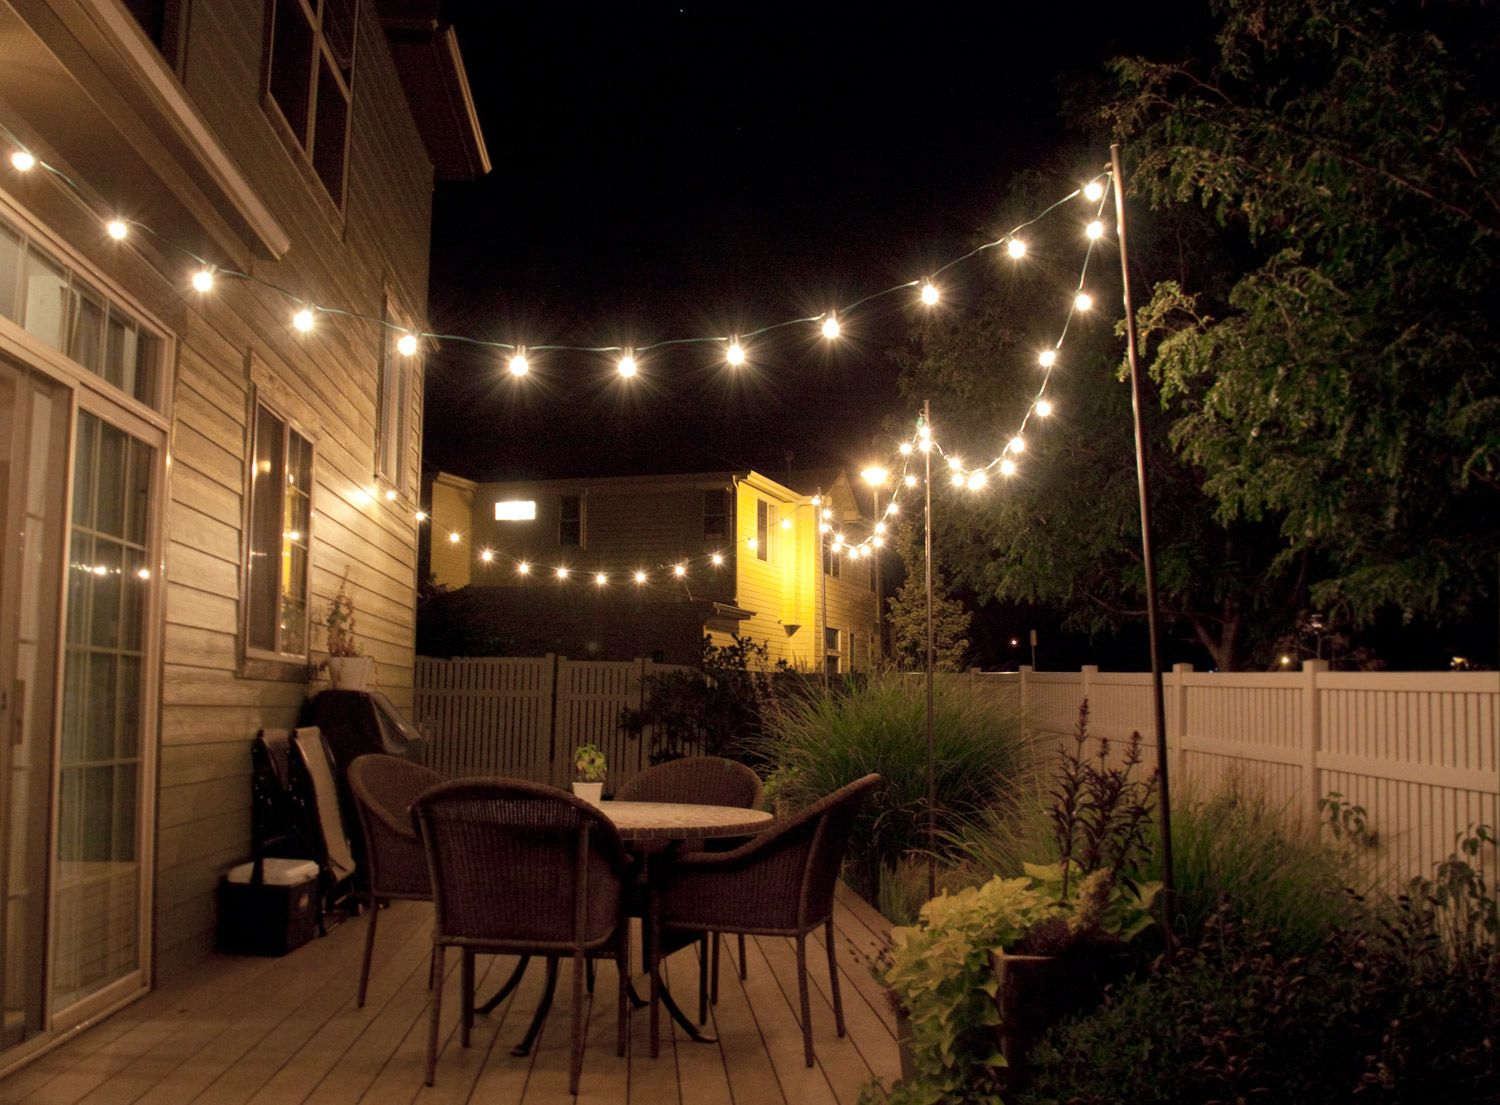 How To Hang String Lights On Covered Patio Best How To Make Inexpensive Poles To Hang String Lights On  Café Style Review